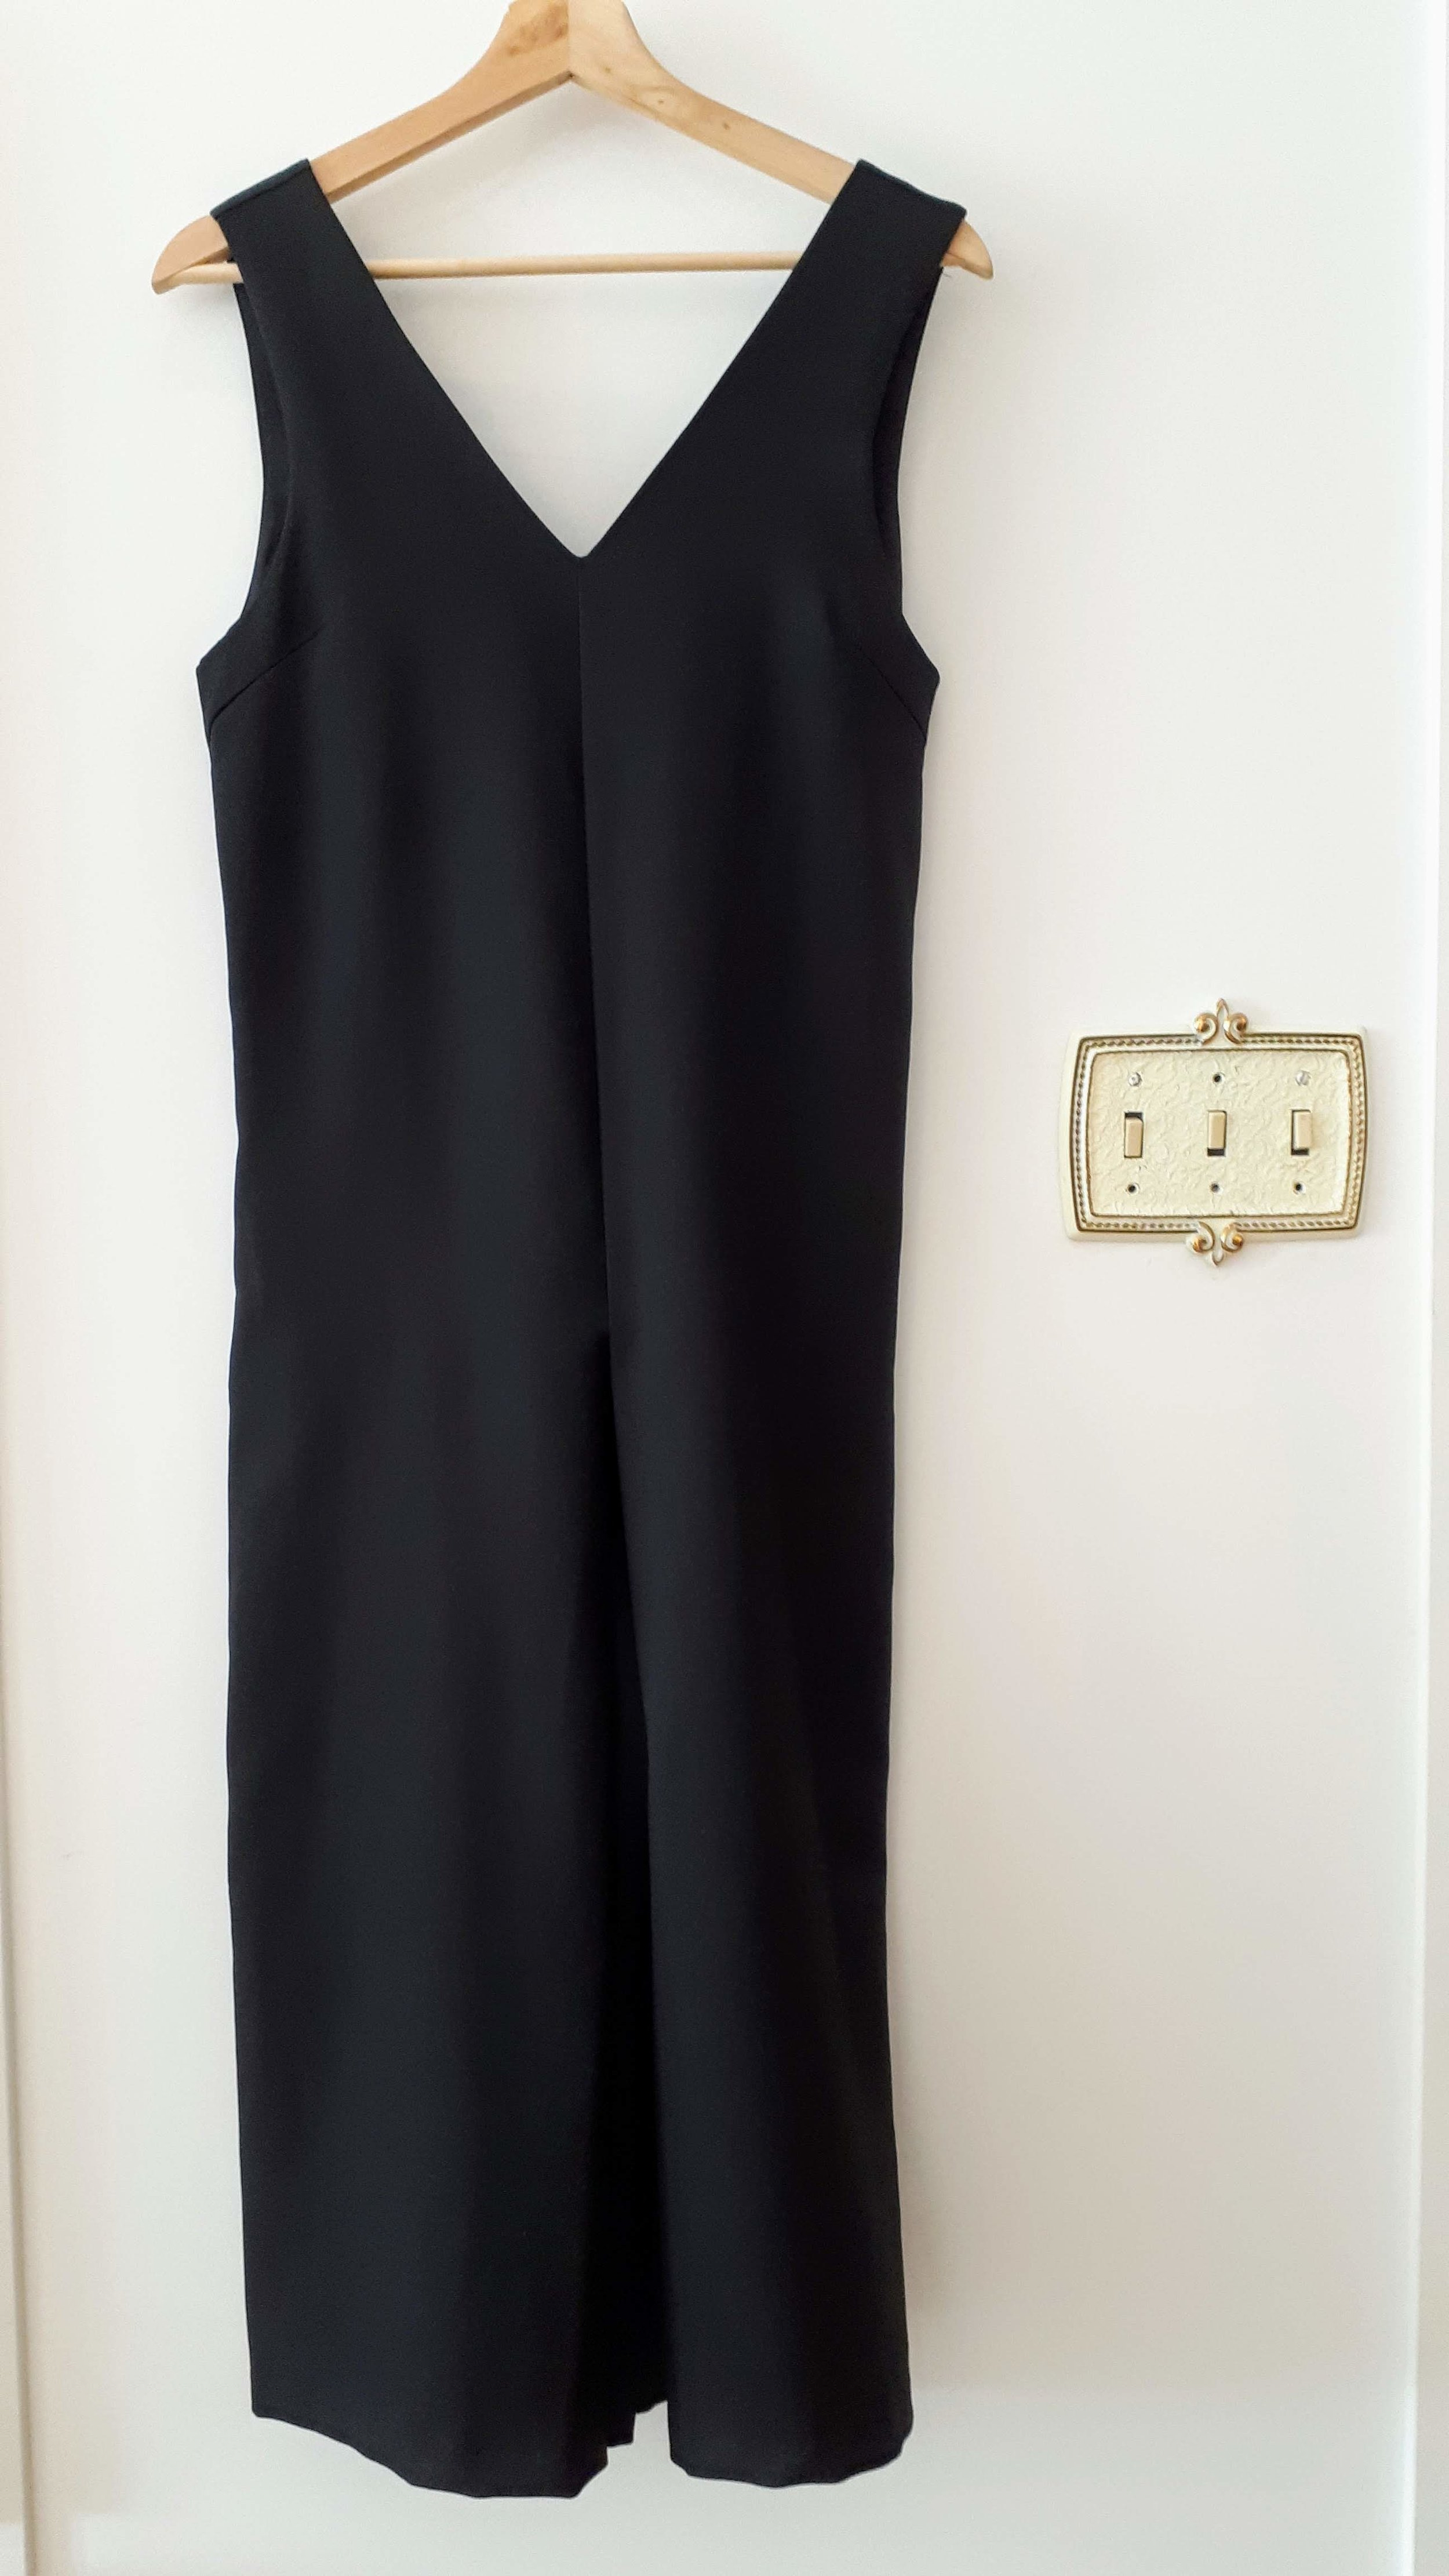 Oak+Fort jumpsuit; Size OS (hehehehehe, snort, sniff!), $46